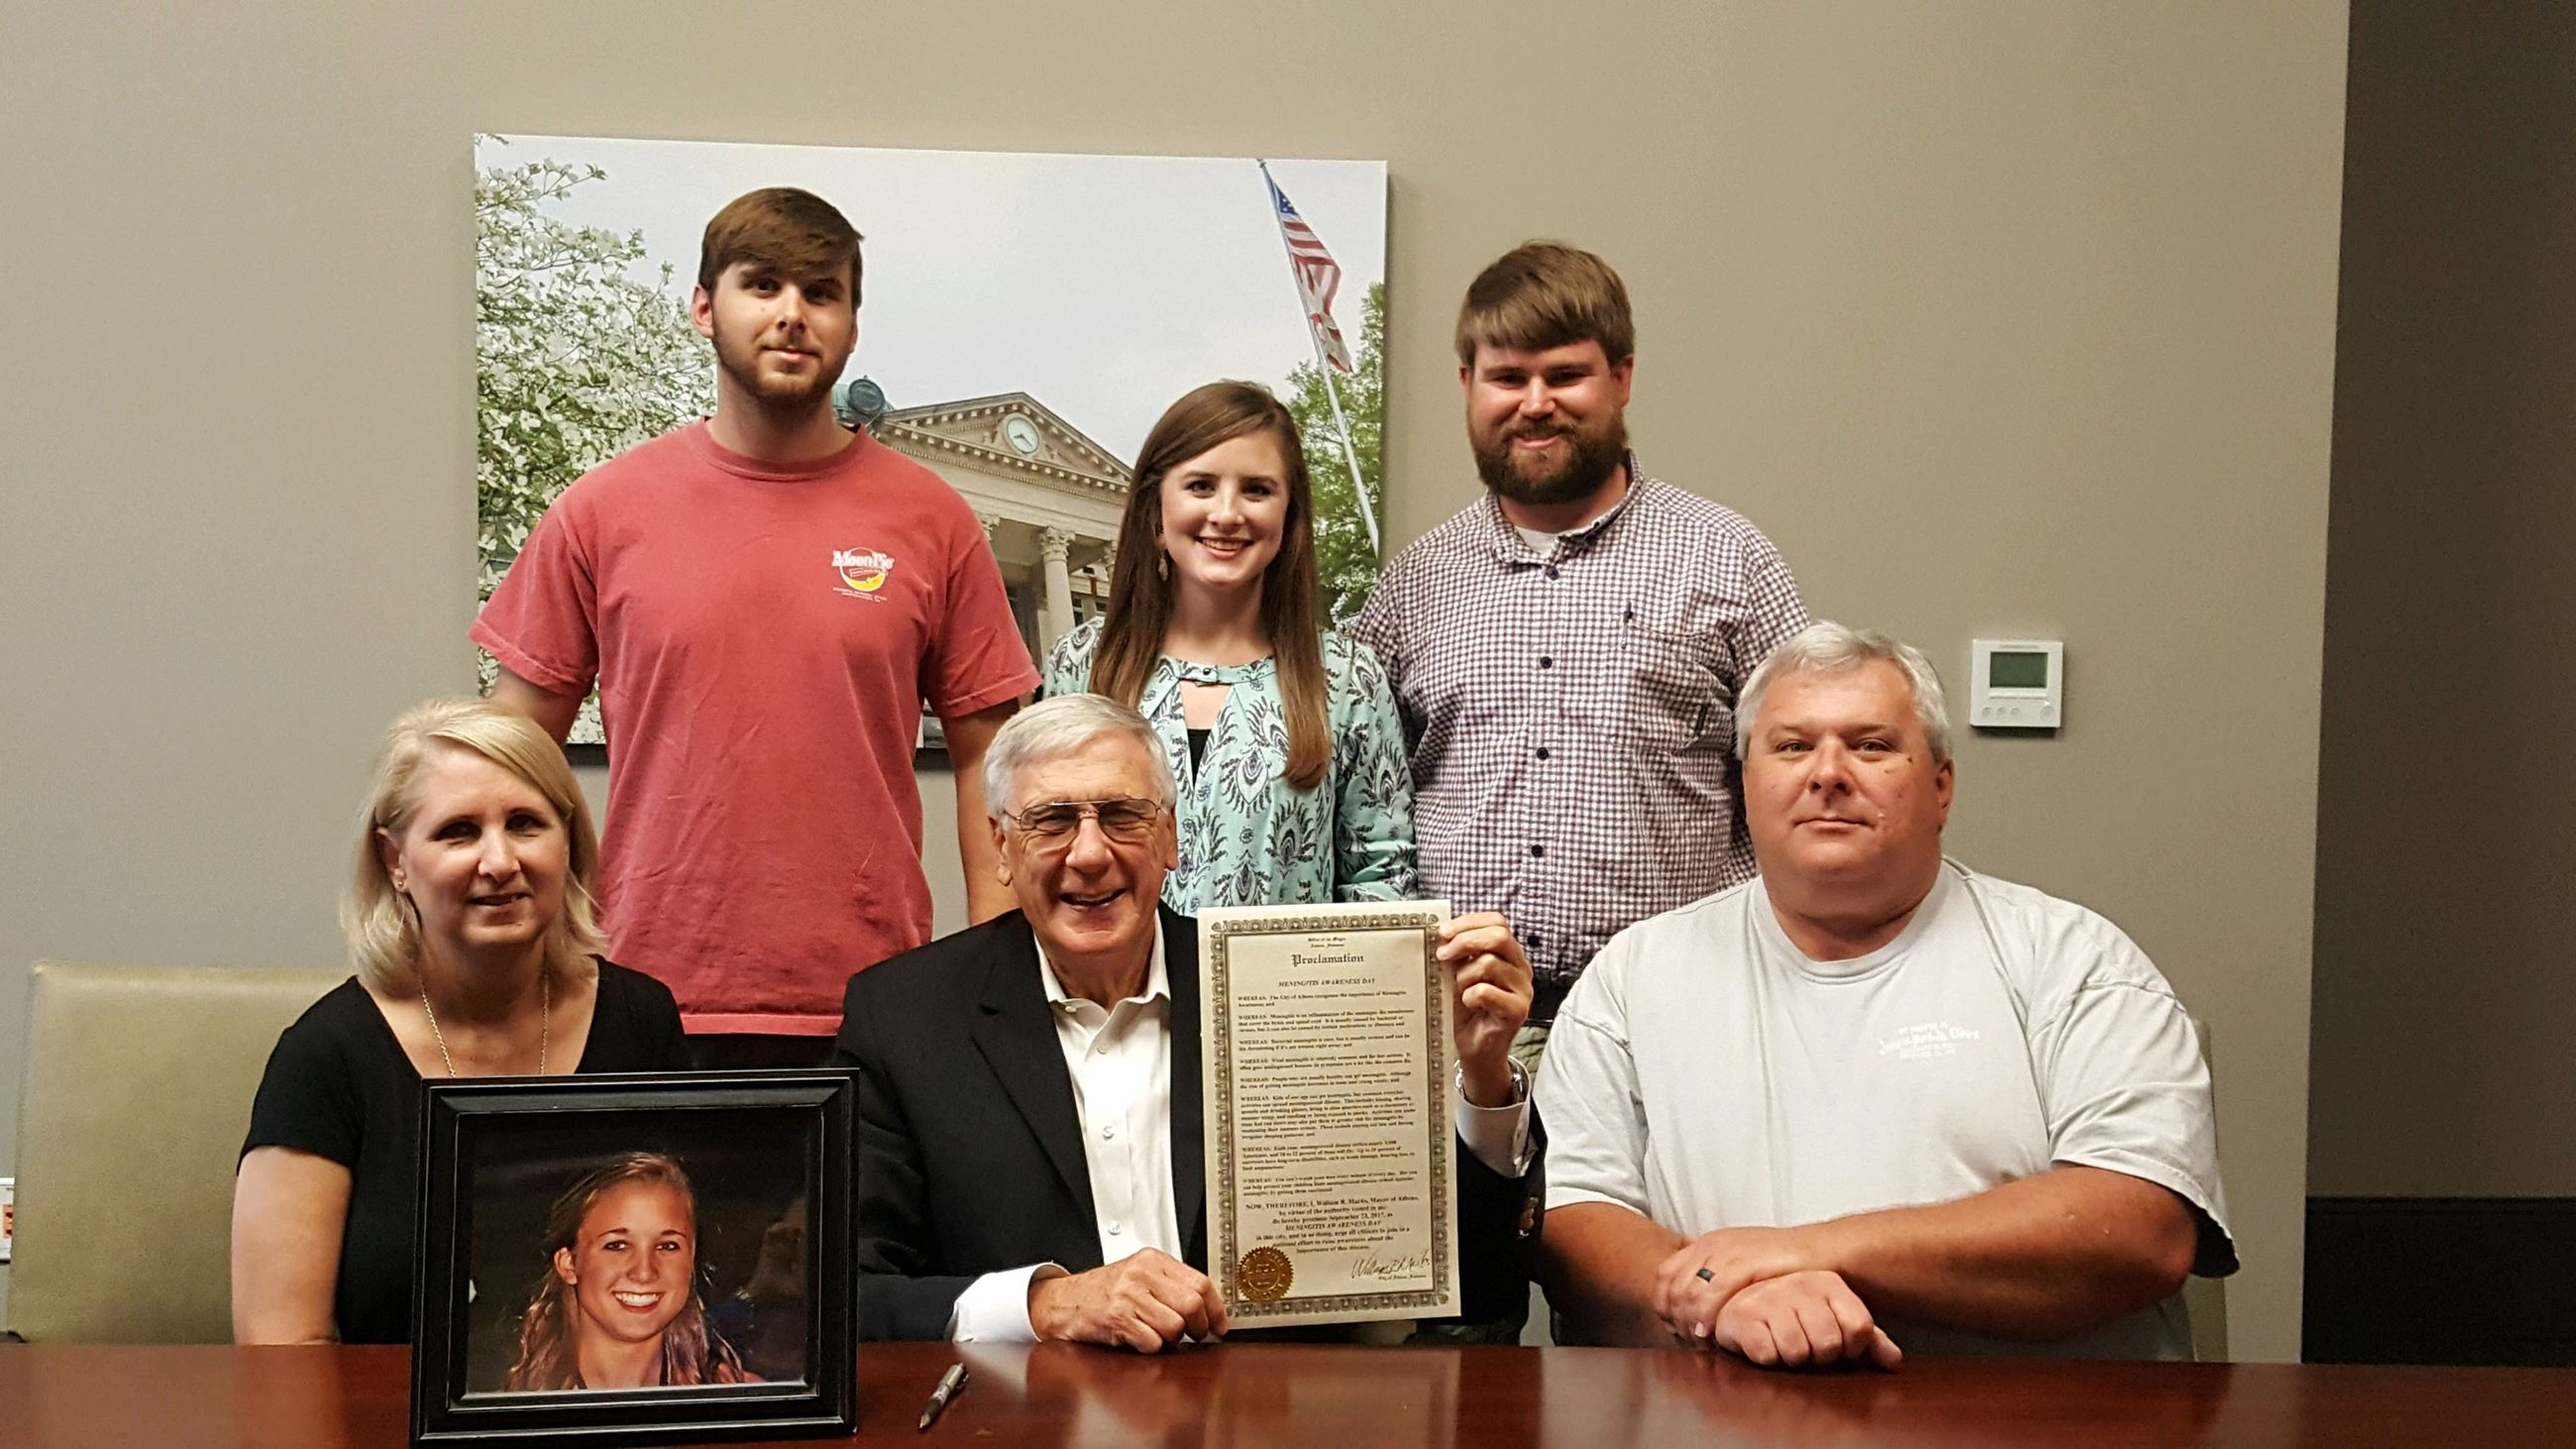 Elkins family with Mayor Marks